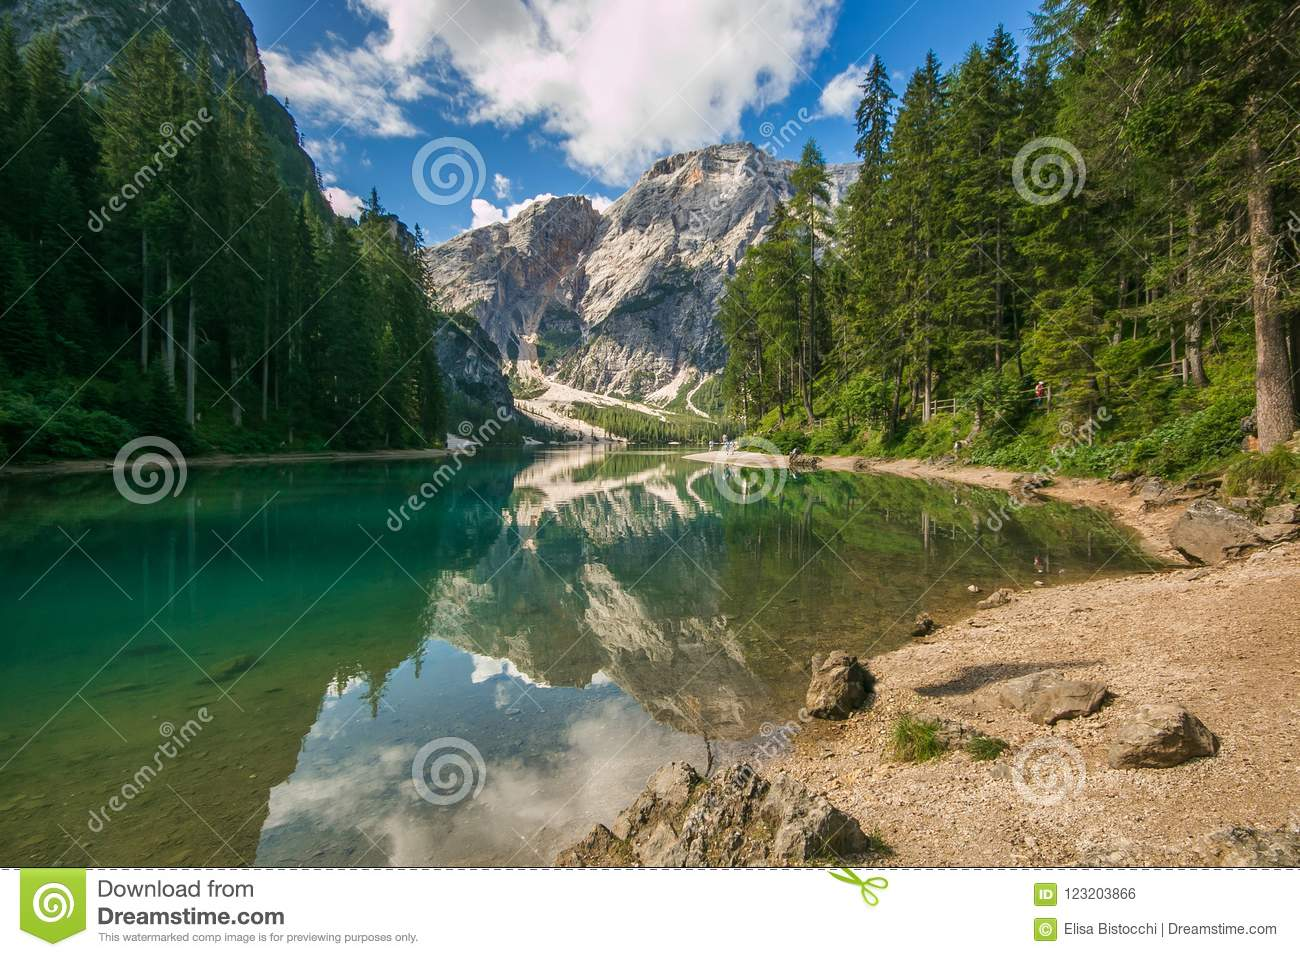 Wonderful summer scenery on Braies Lake Lago di Braies and larch trees with reflection in the water. Fanes-Sennes-Prags Fanes-S